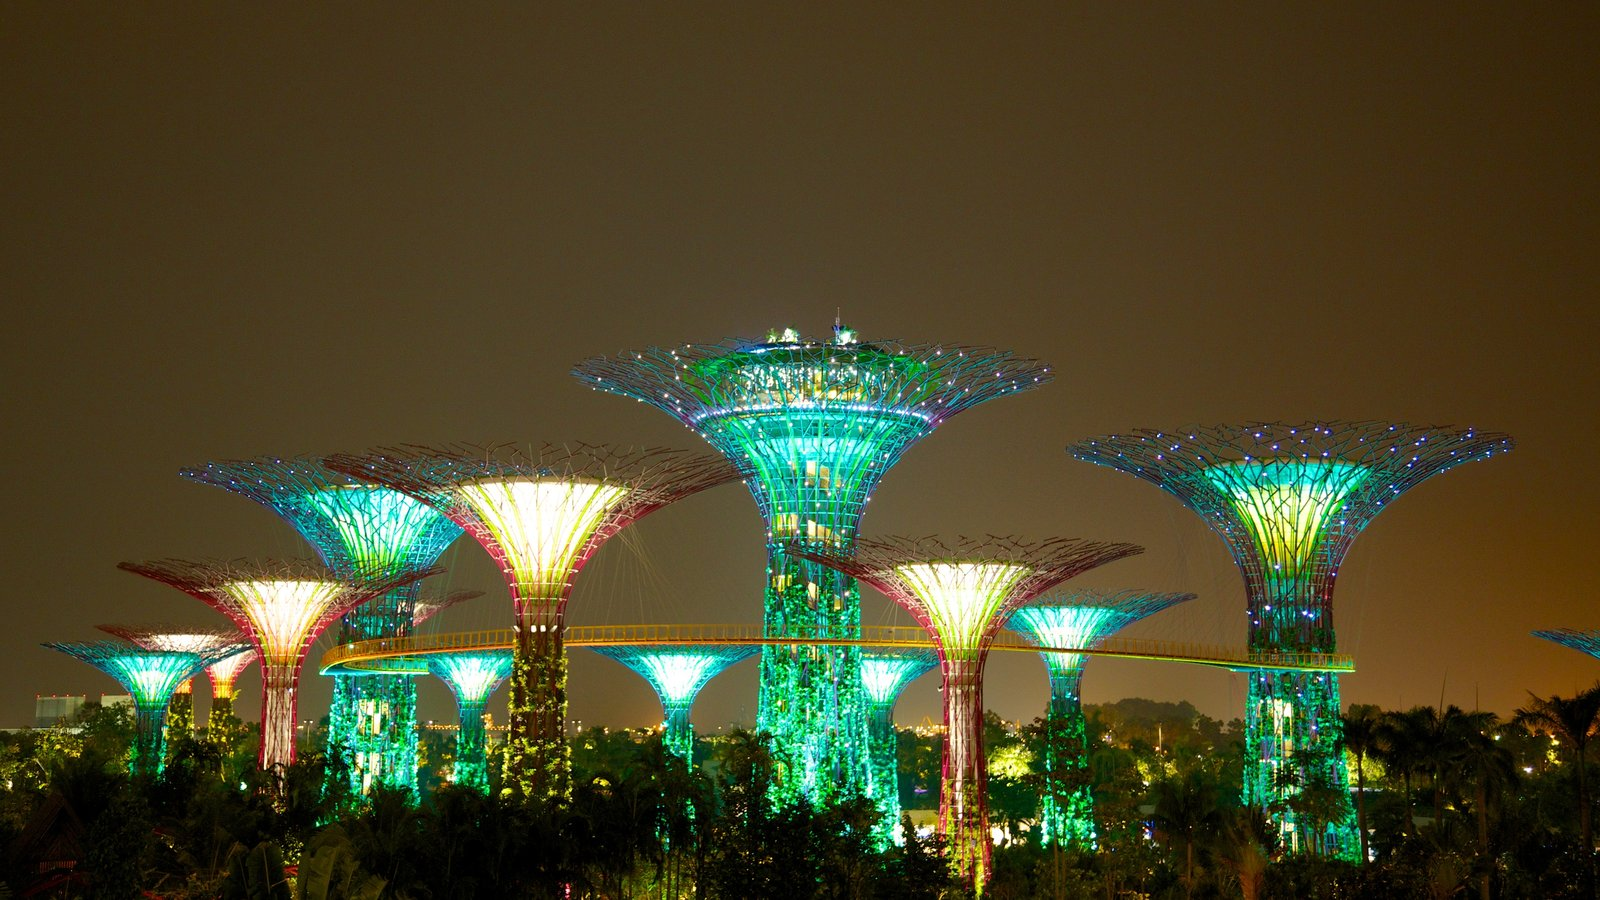 Garden By The Bay Night modern architecture pictures: view images of gardensthe bay